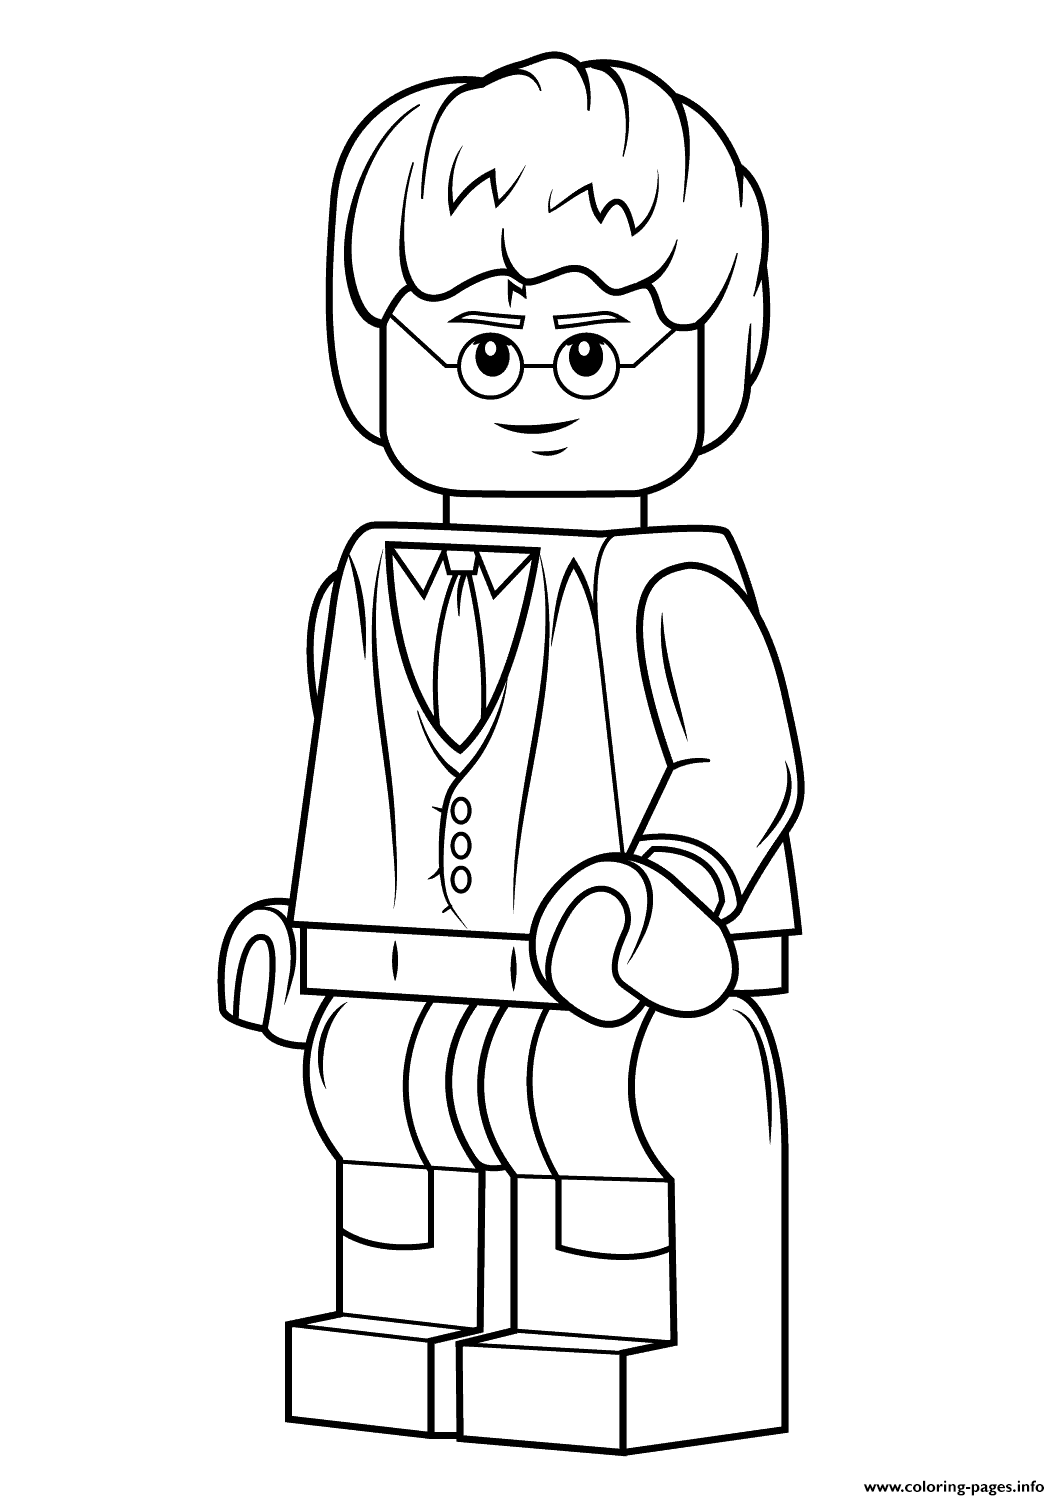 Print lego harry potter coloring pages | coloring is therapeutic ...